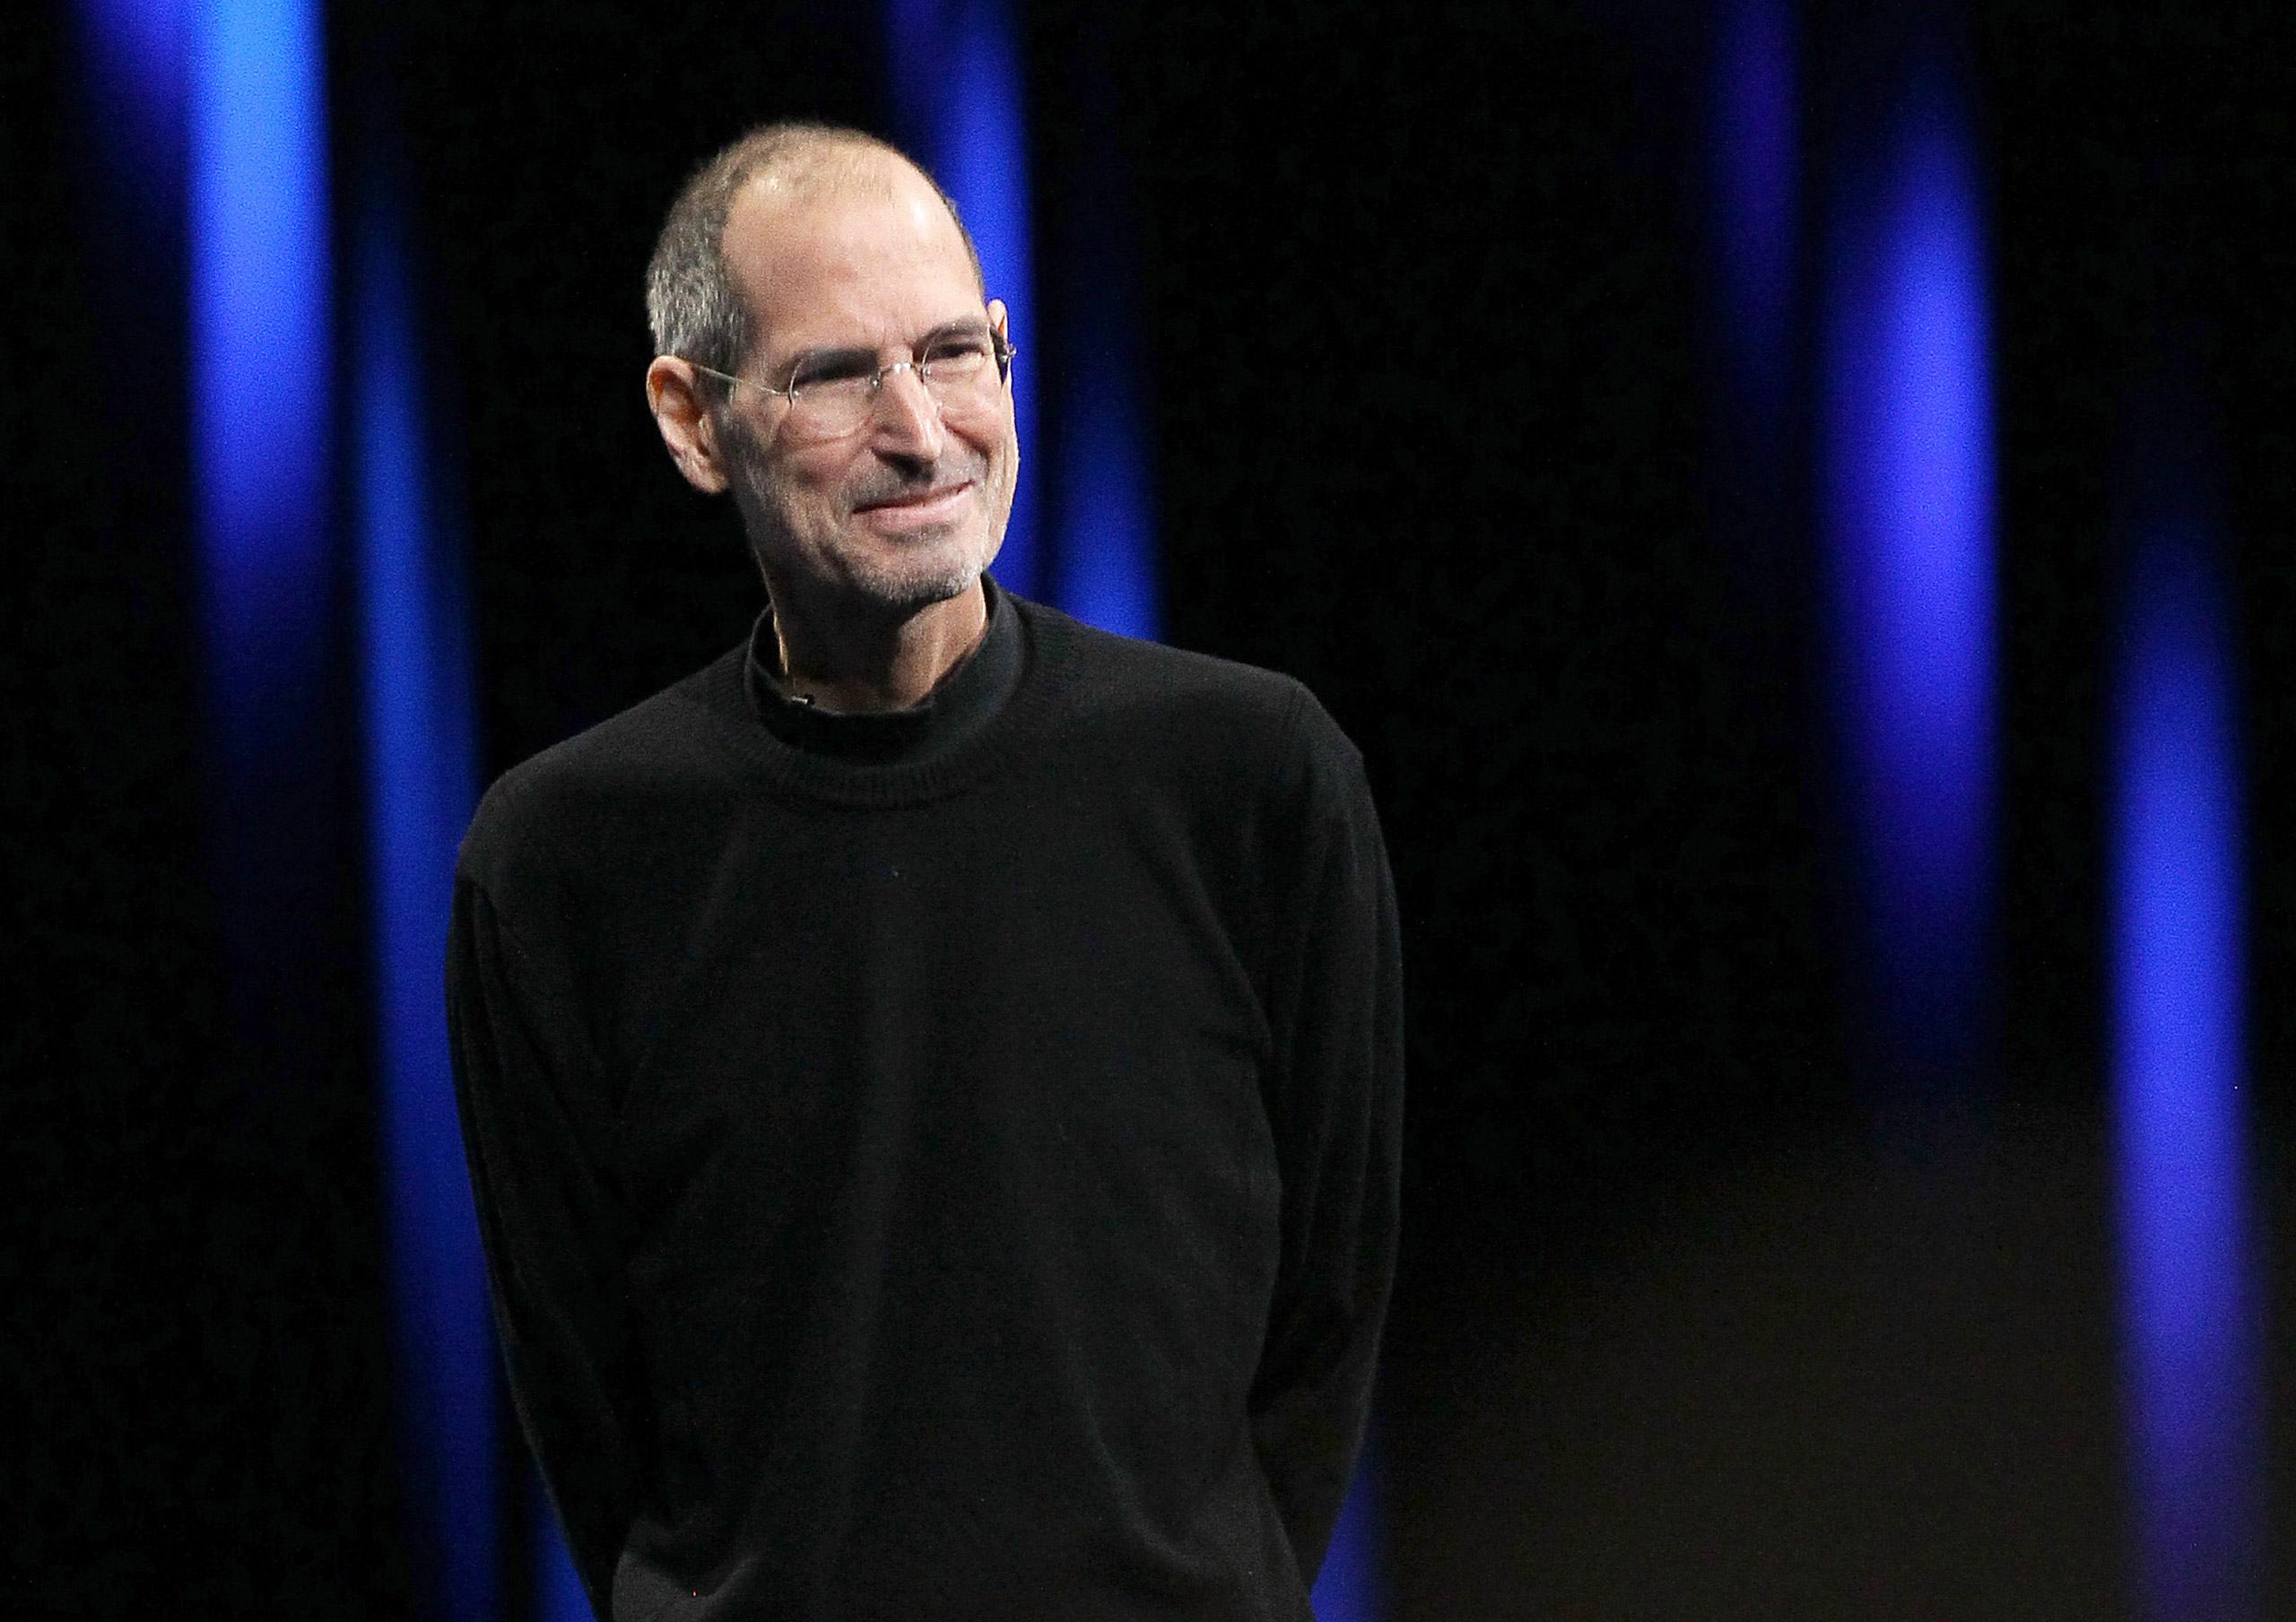 Apple CEO Steve Jobs at the 2011 Apple World Wide Developers Conference at the Moscone Center on June 6, 2011 in San Francisco.